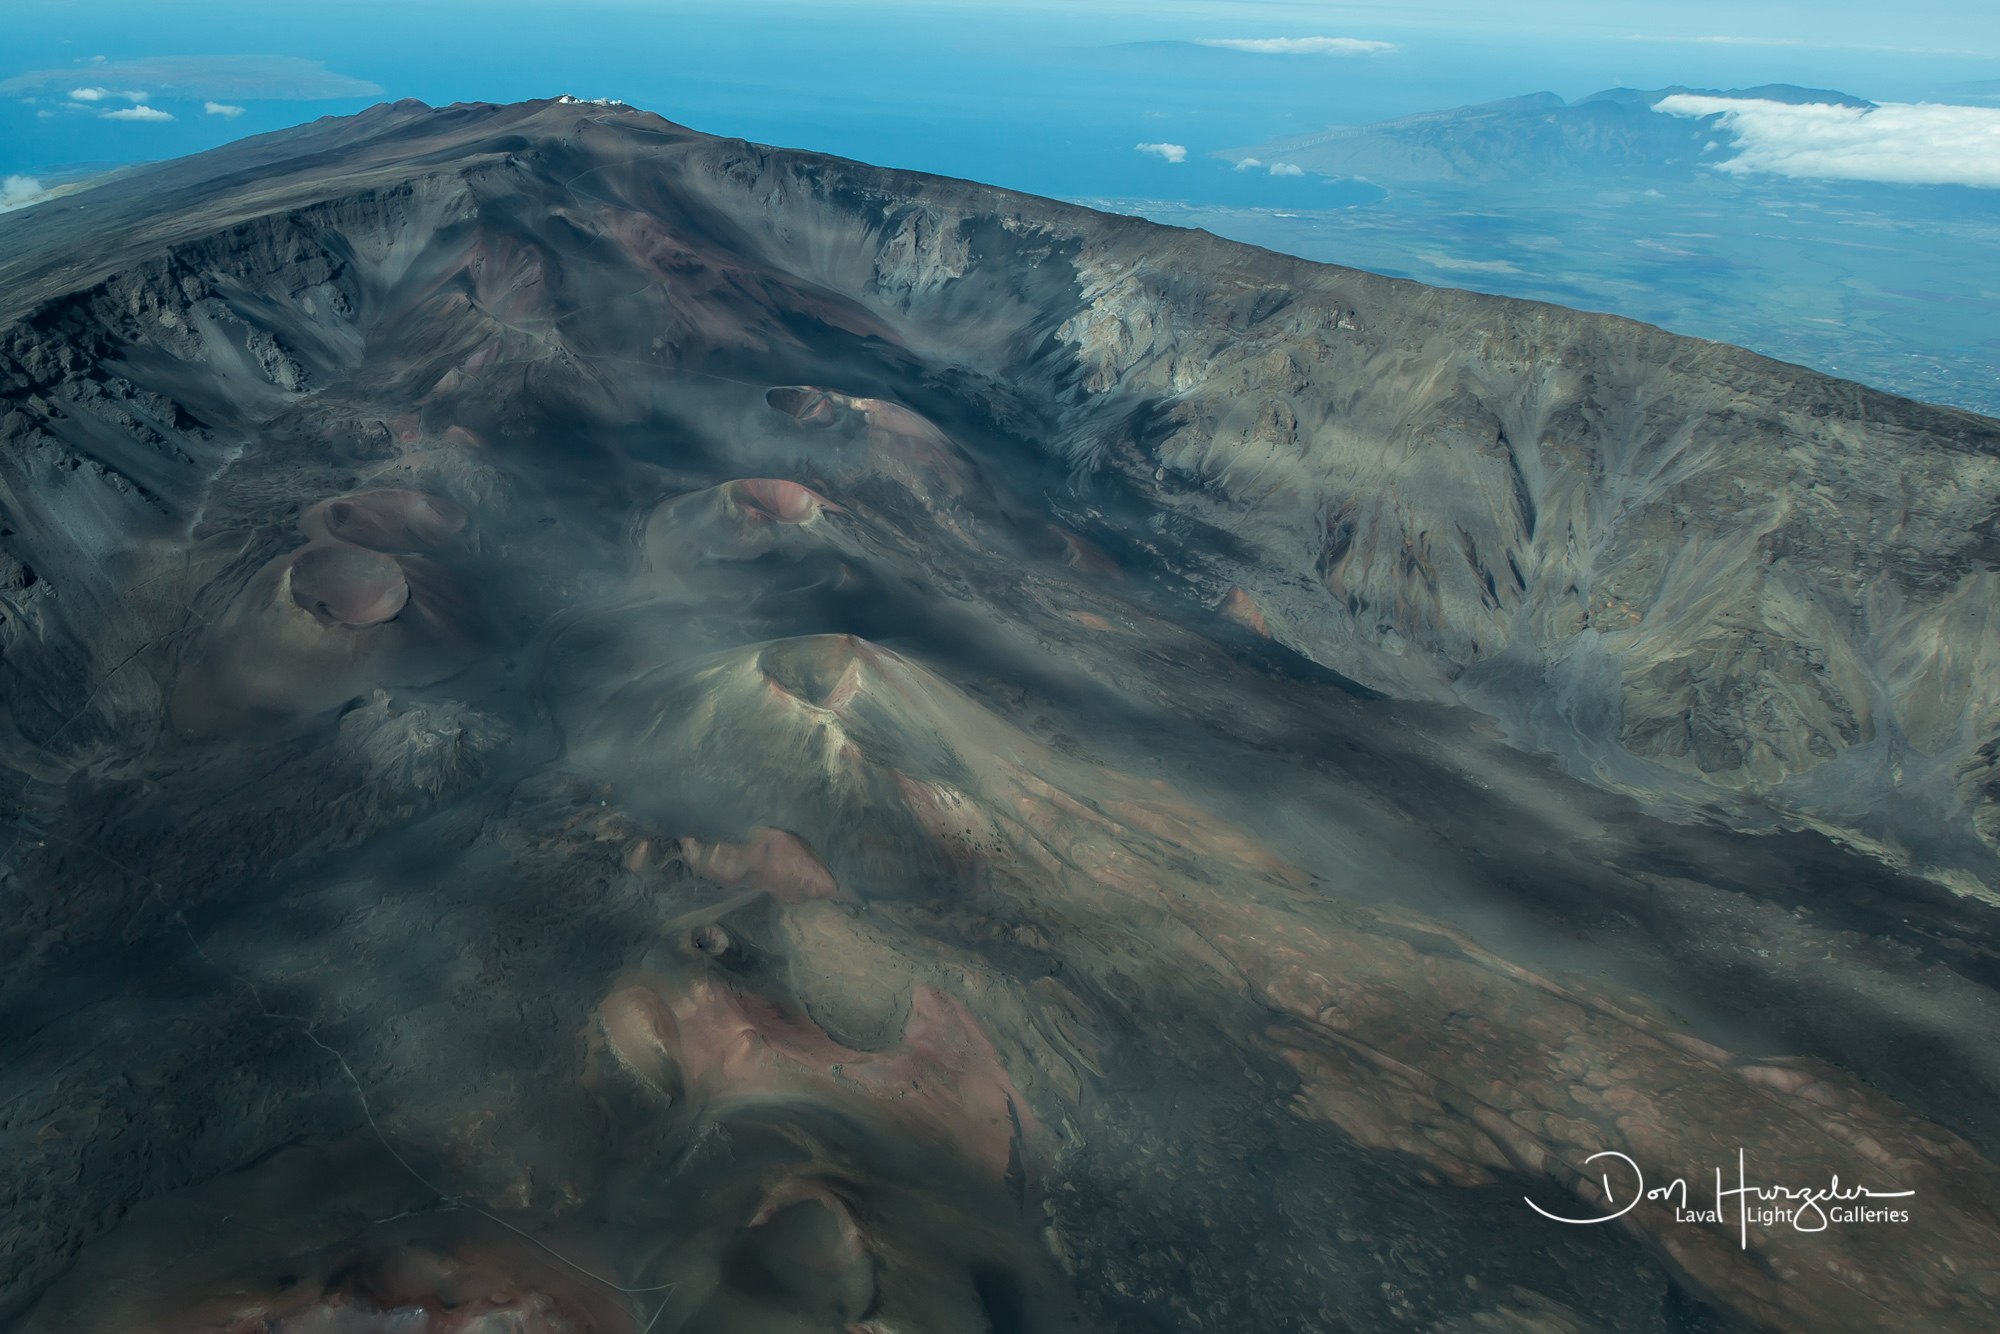 From a plane flying over Haleakala crater.